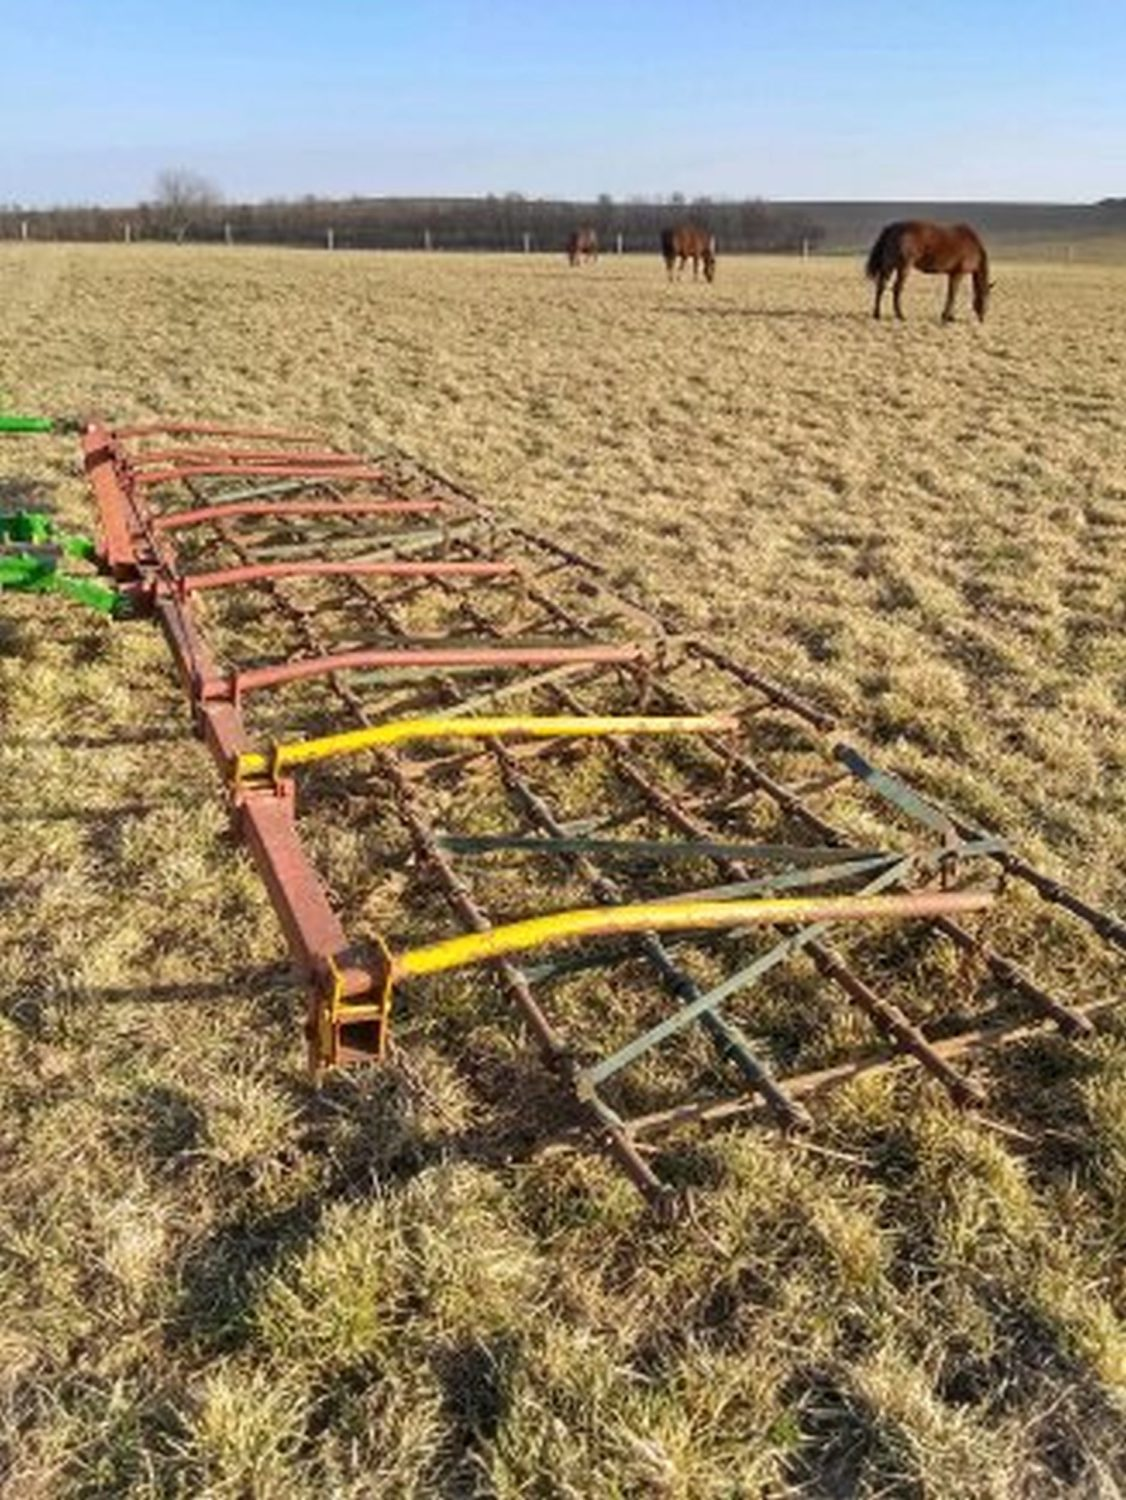 23ft. 4 Section Category 1 3-point Field harrow - Image 1